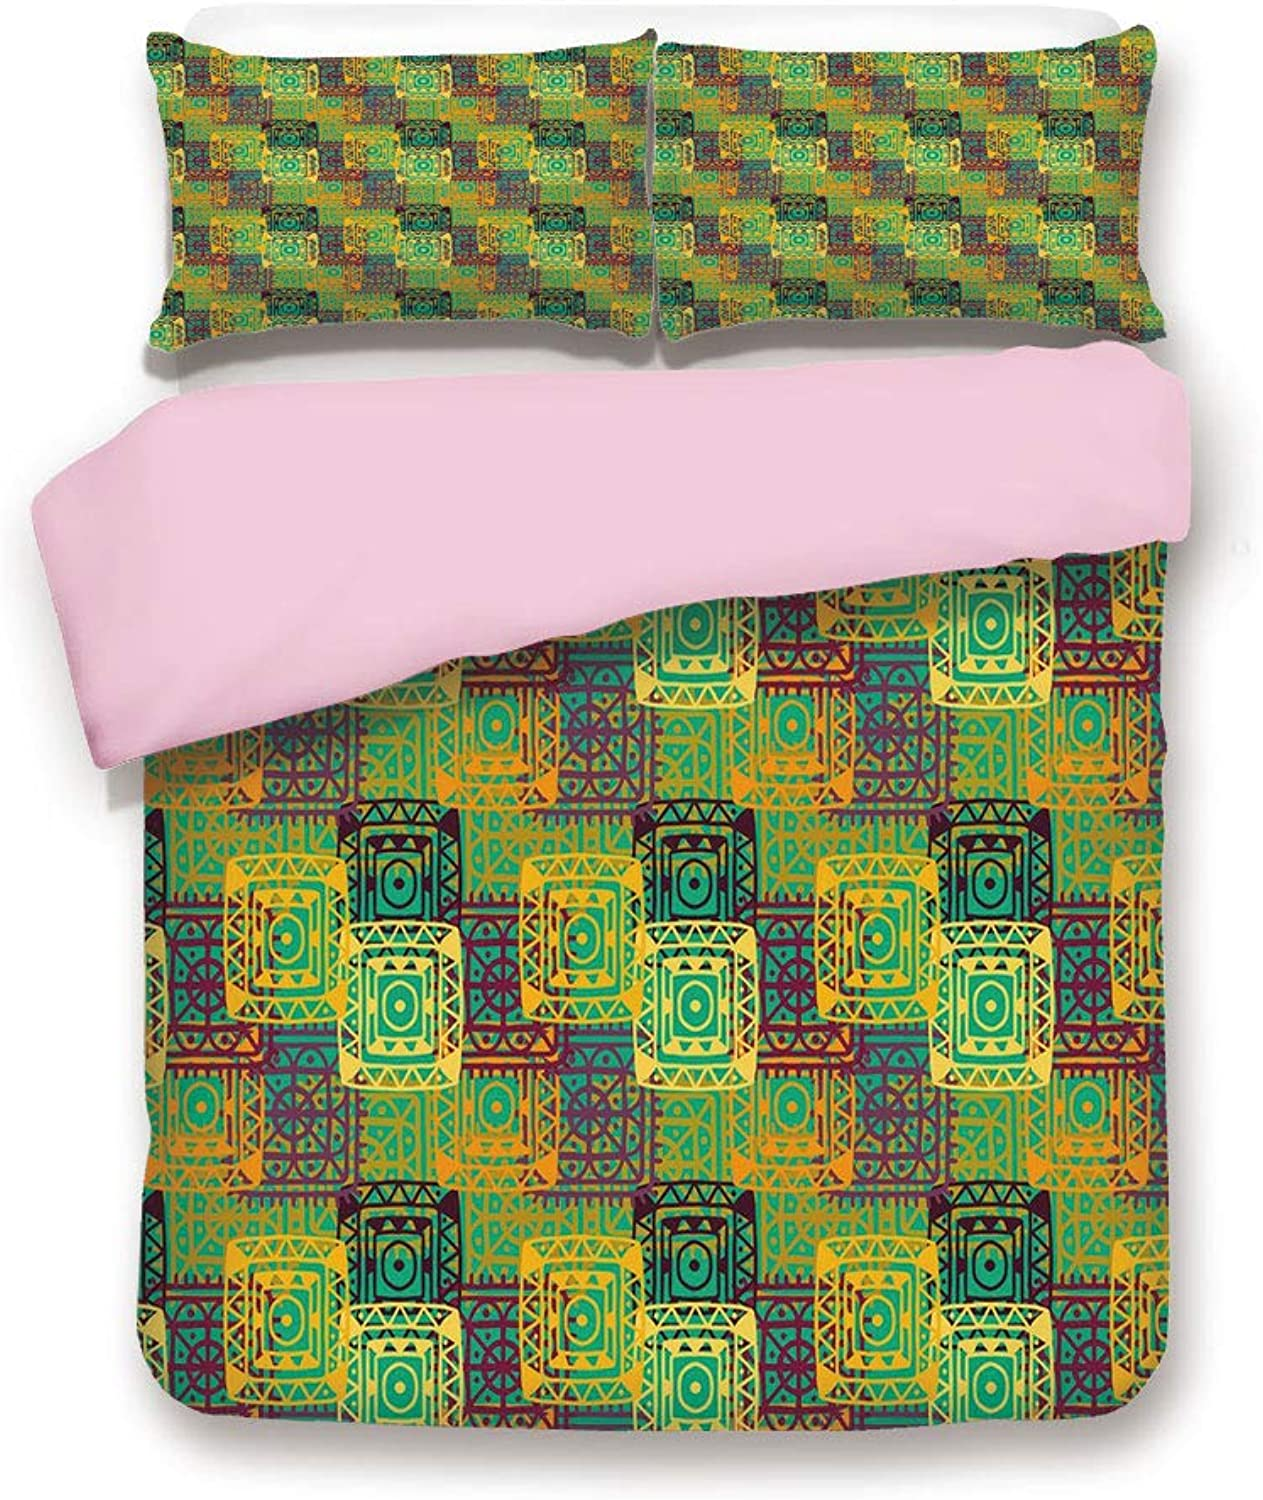 Pink Duvet Cover Set,FULL Size,Aztec Pattern with Geometric